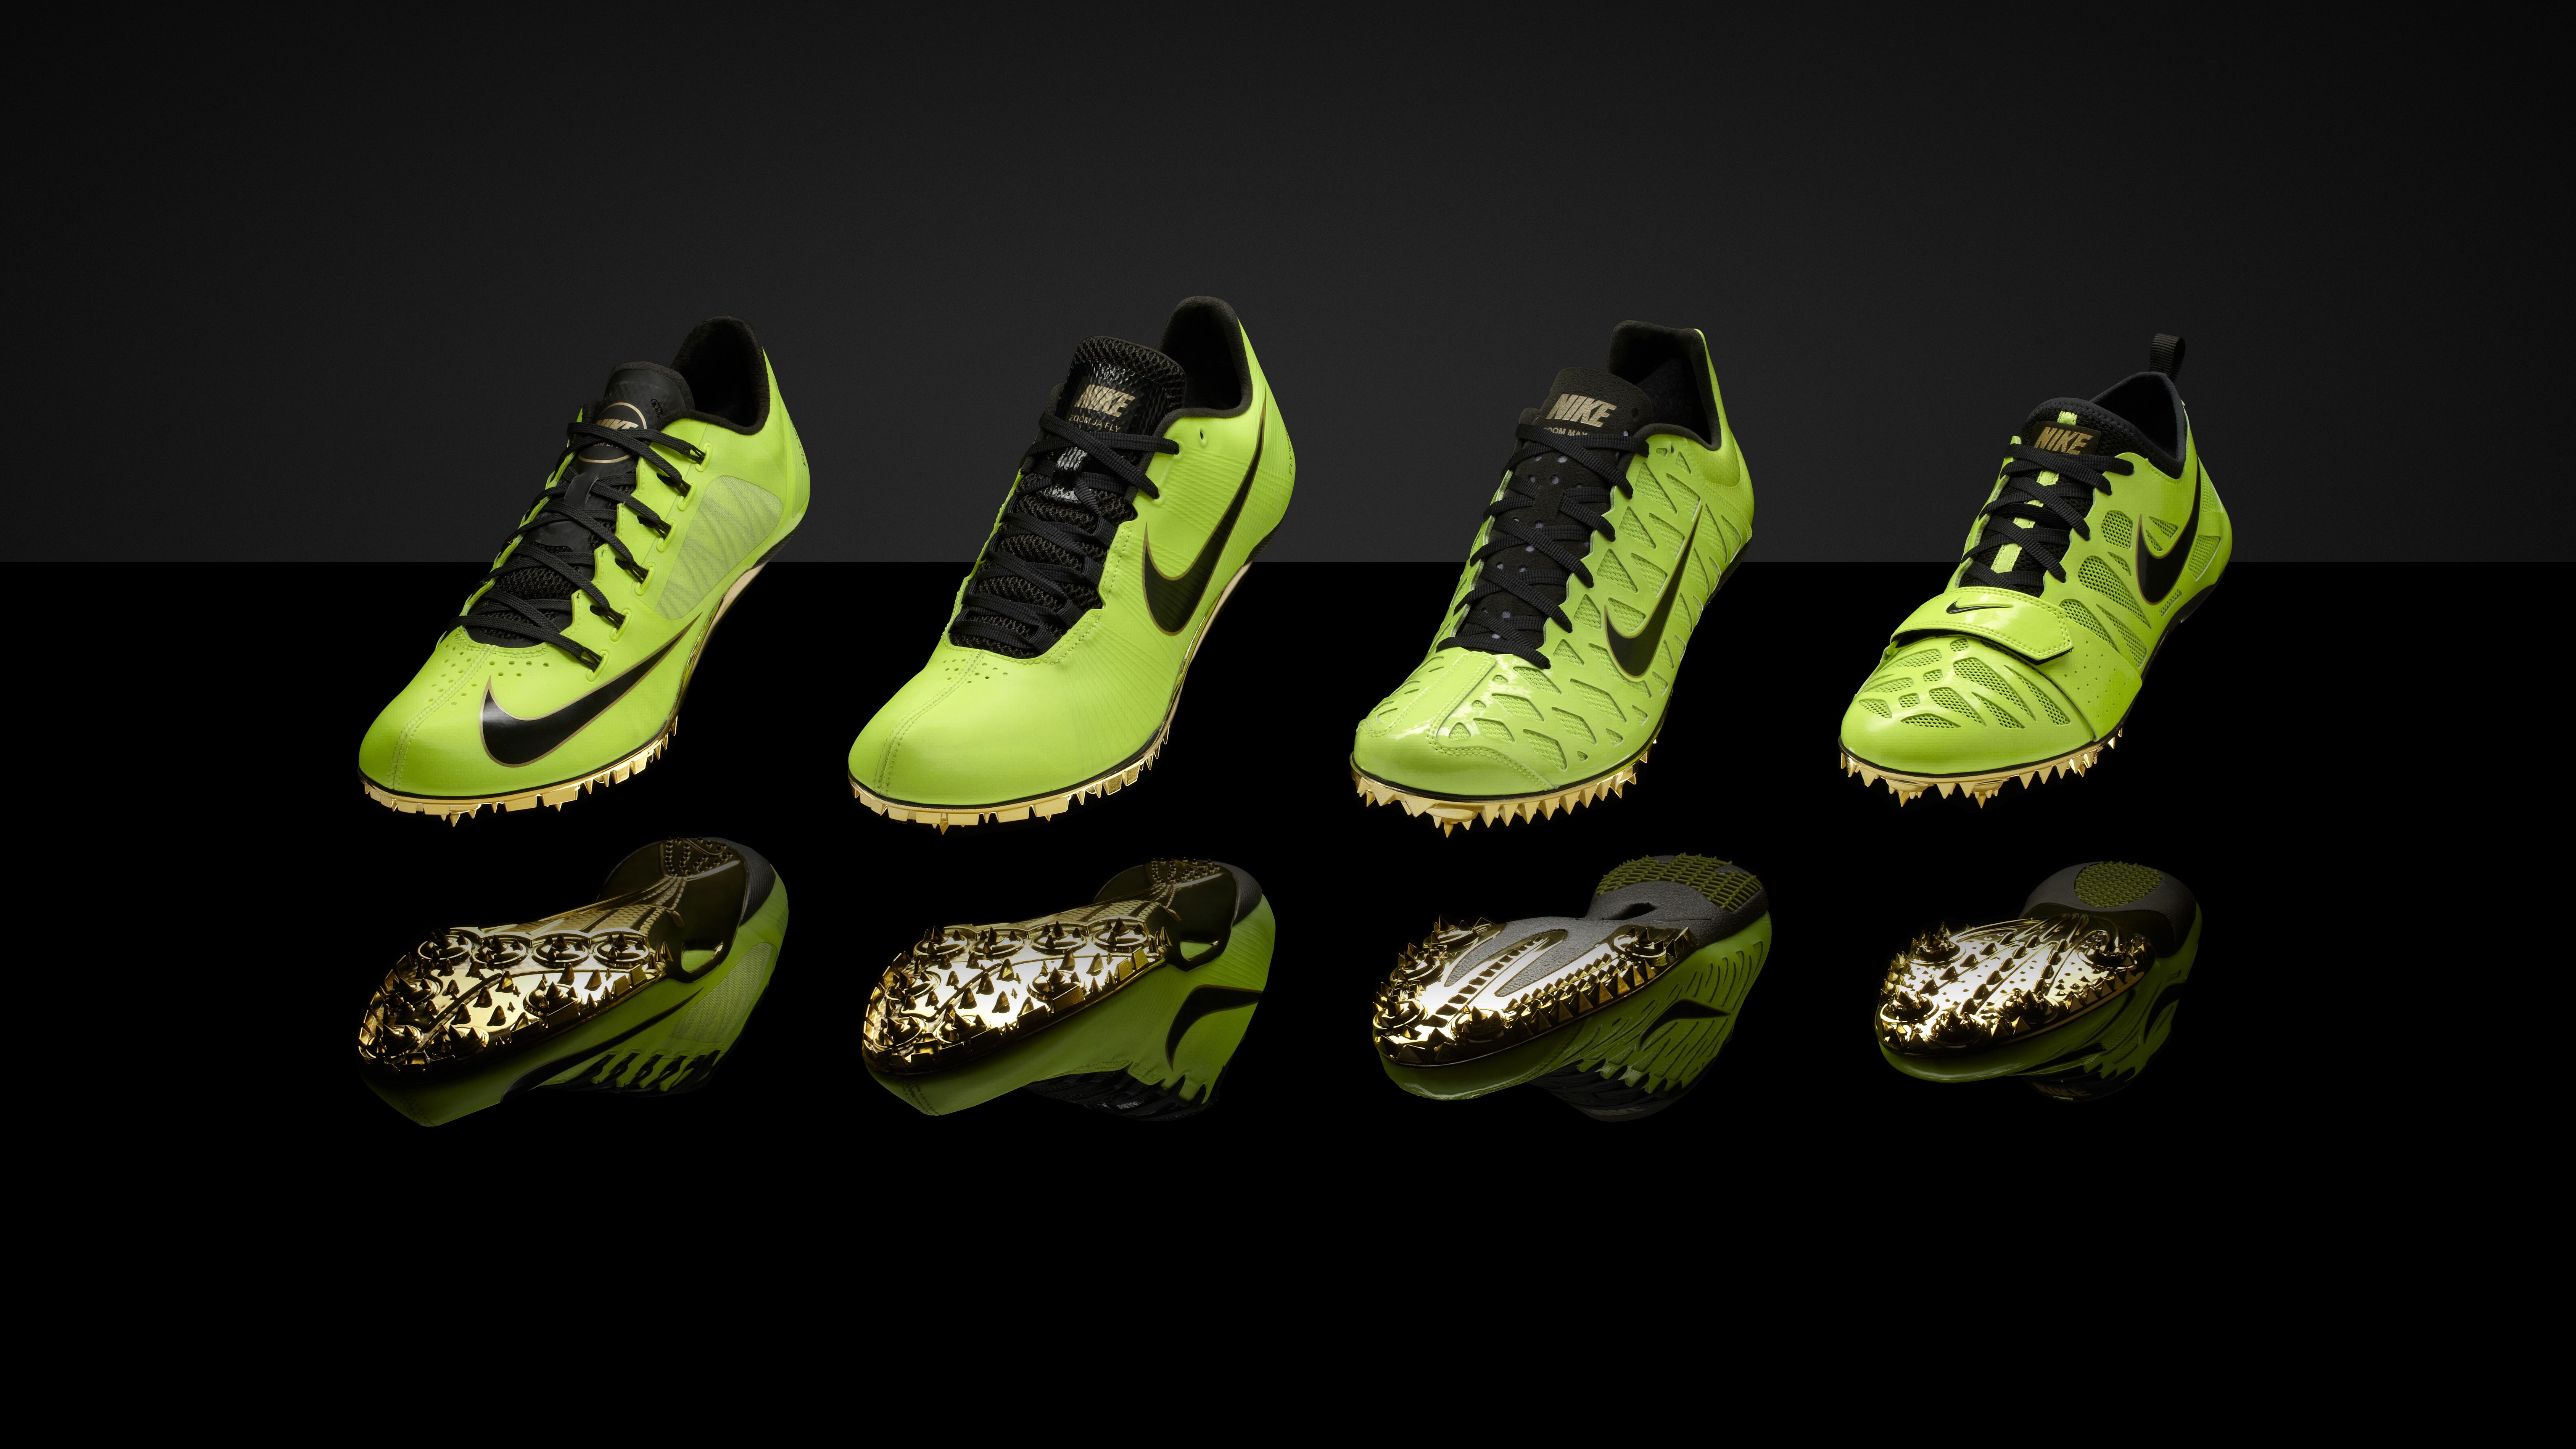 Nike Sprint spikes | For all the latest Sprint spikes news and reviews,  from the